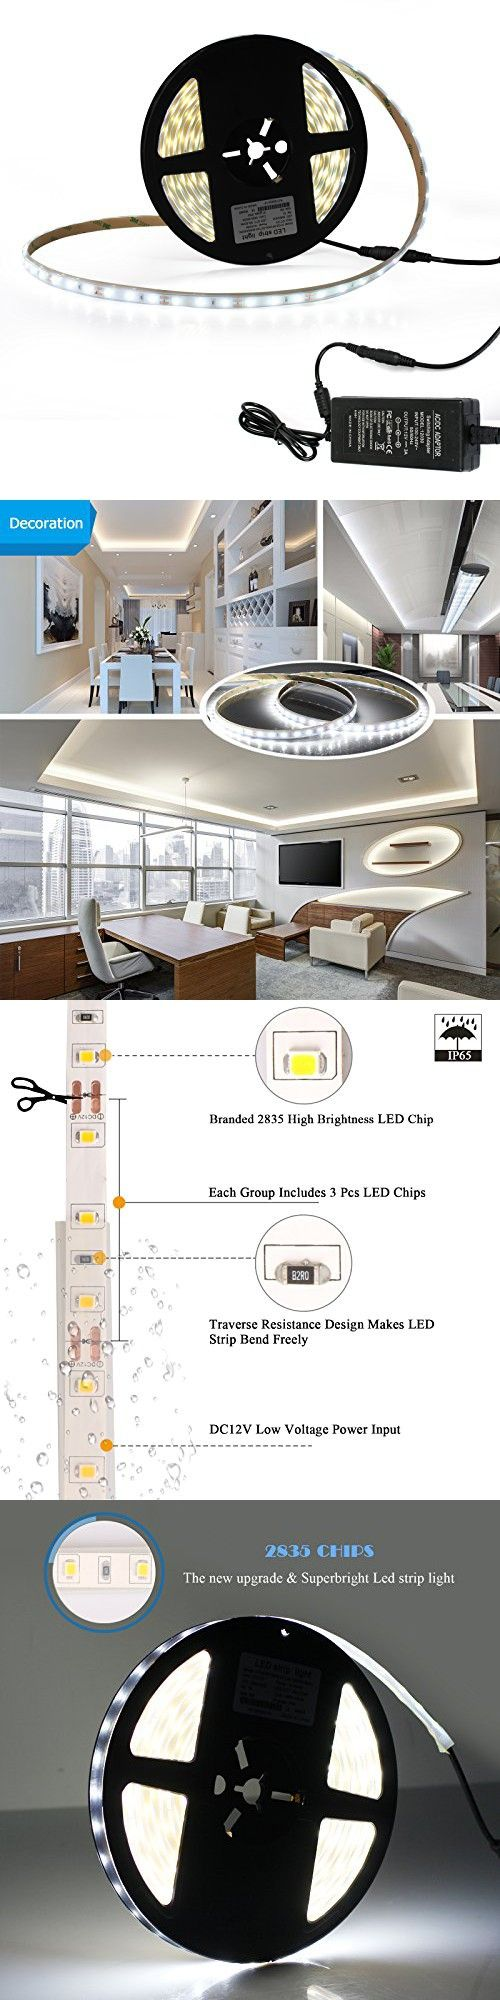 56b5855aab7b775febb4606a3dc0f331 best 25 led tape ideas on pinterest led tape light, strip  at gsmportal.co